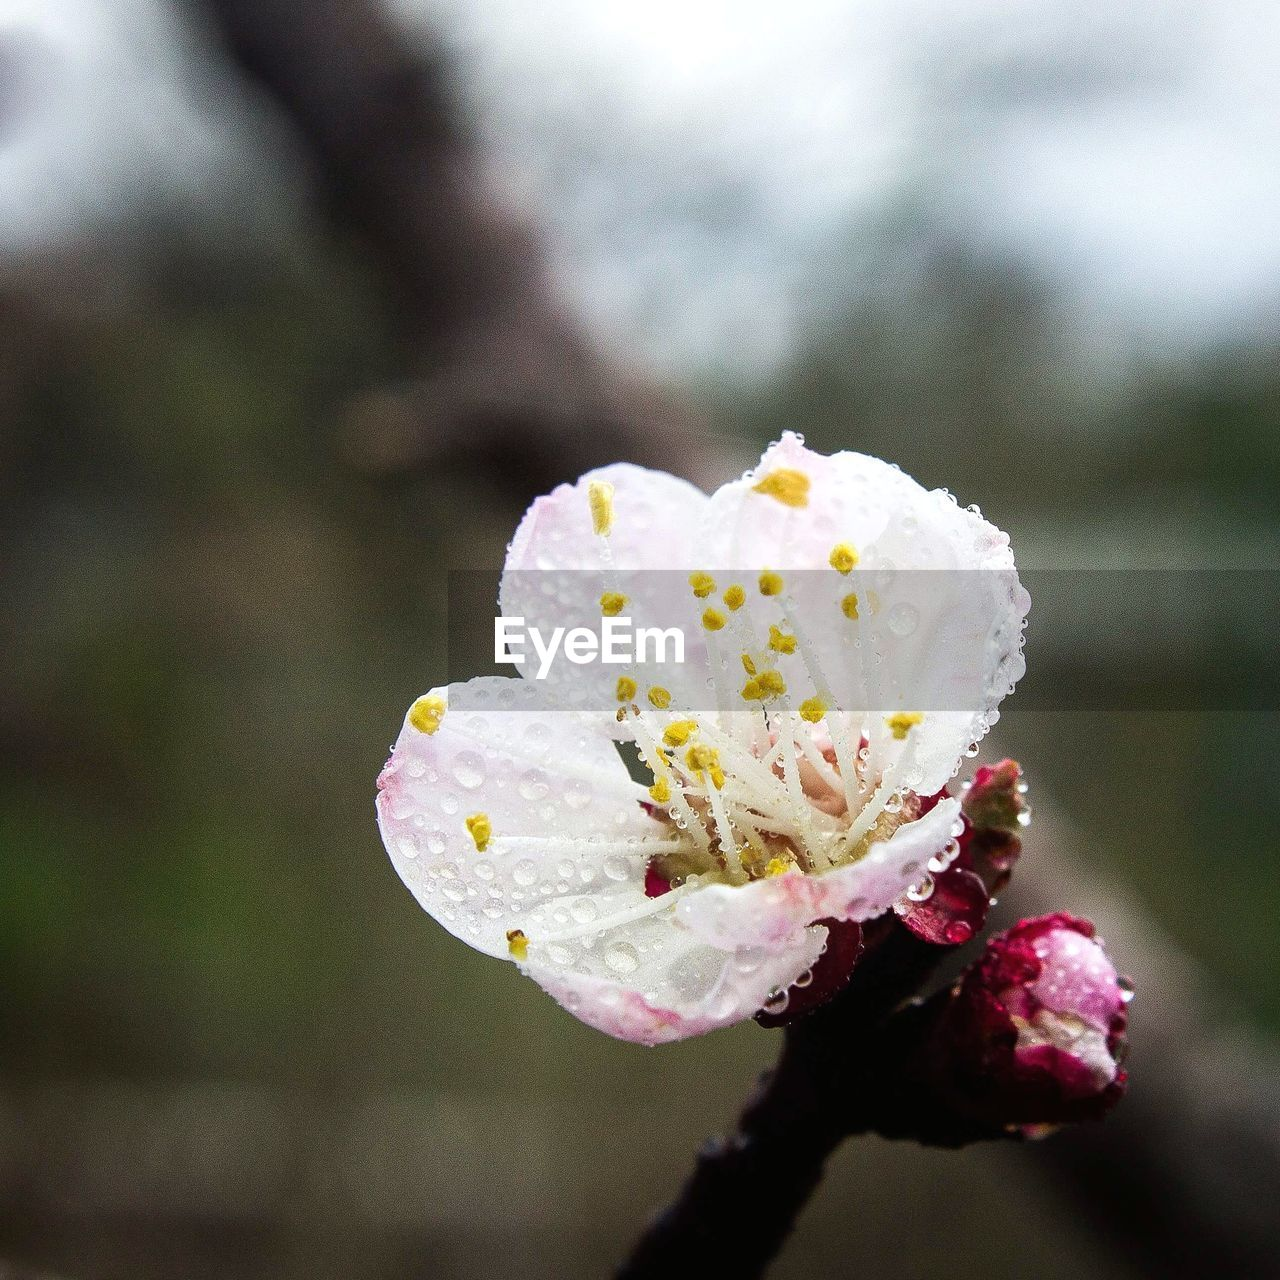 flower, flowering plant, fragility, vulnerability, growth, plant, beauty in nature, freshness, petal, flower head, close-up, inflorescence, focus on foreground, day, nature, white color, no people, outdoors, drop, pollen, springtime, raindrop, dew